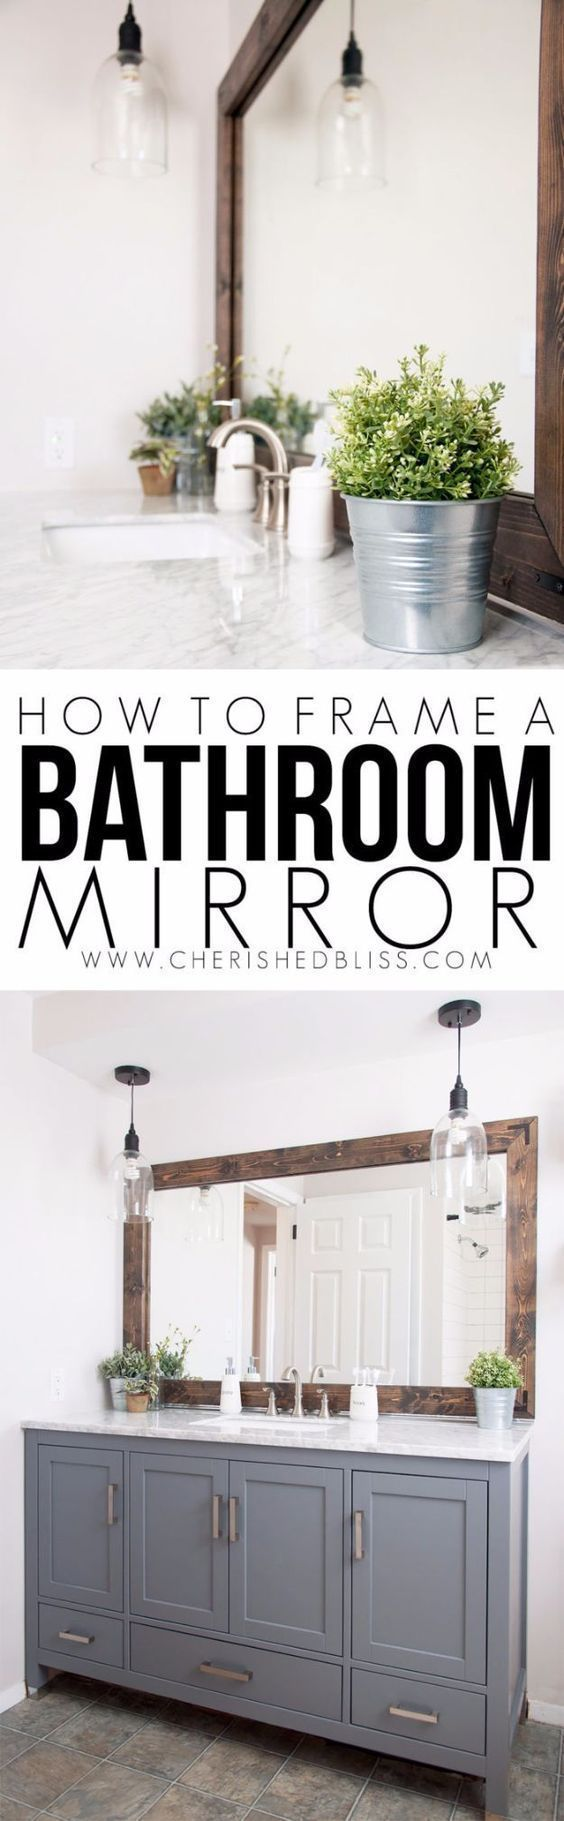 Diy Remodeling Hacks Frame A Bathroom Mirror Quick And Easy Home Repair Tips And Tricks Co Bathroom Farmhouse Style Home Decor Farmhouse Bathroom Mirrors